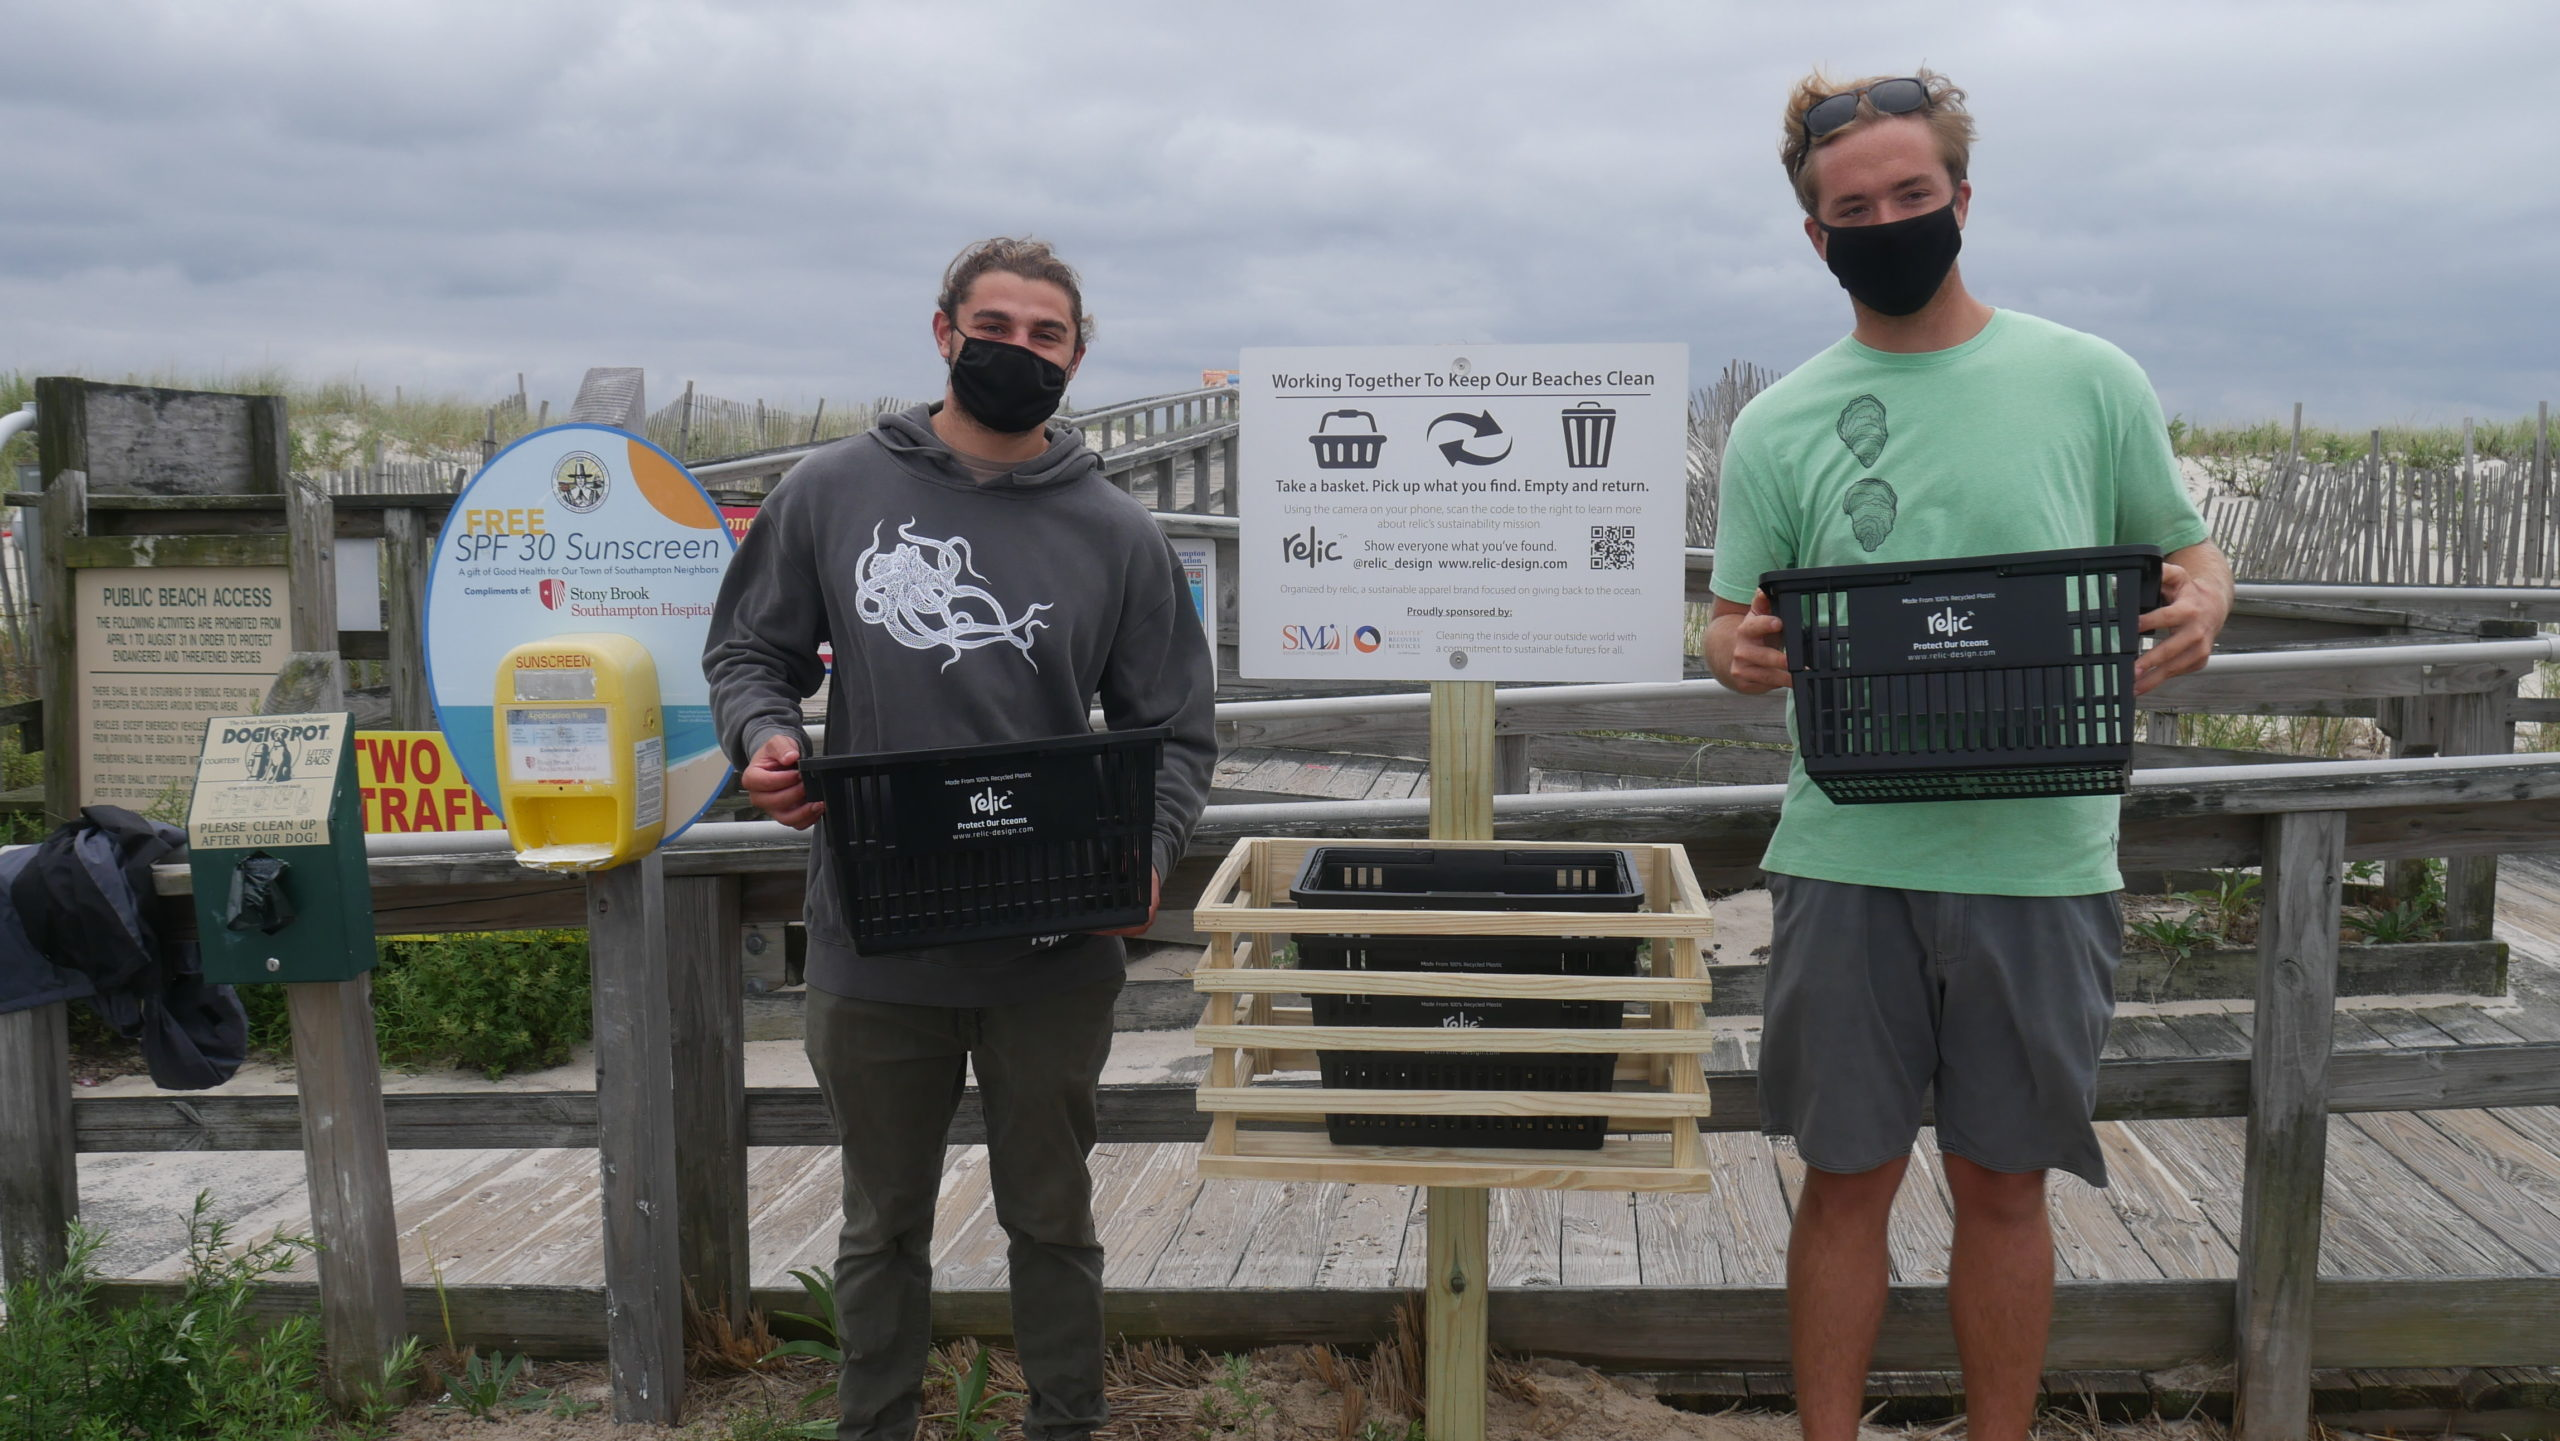 Aiden Kravitz and John Pike from Relic at the unveiling of the beach basket program at Pike's Beach in Westhampton Beach.